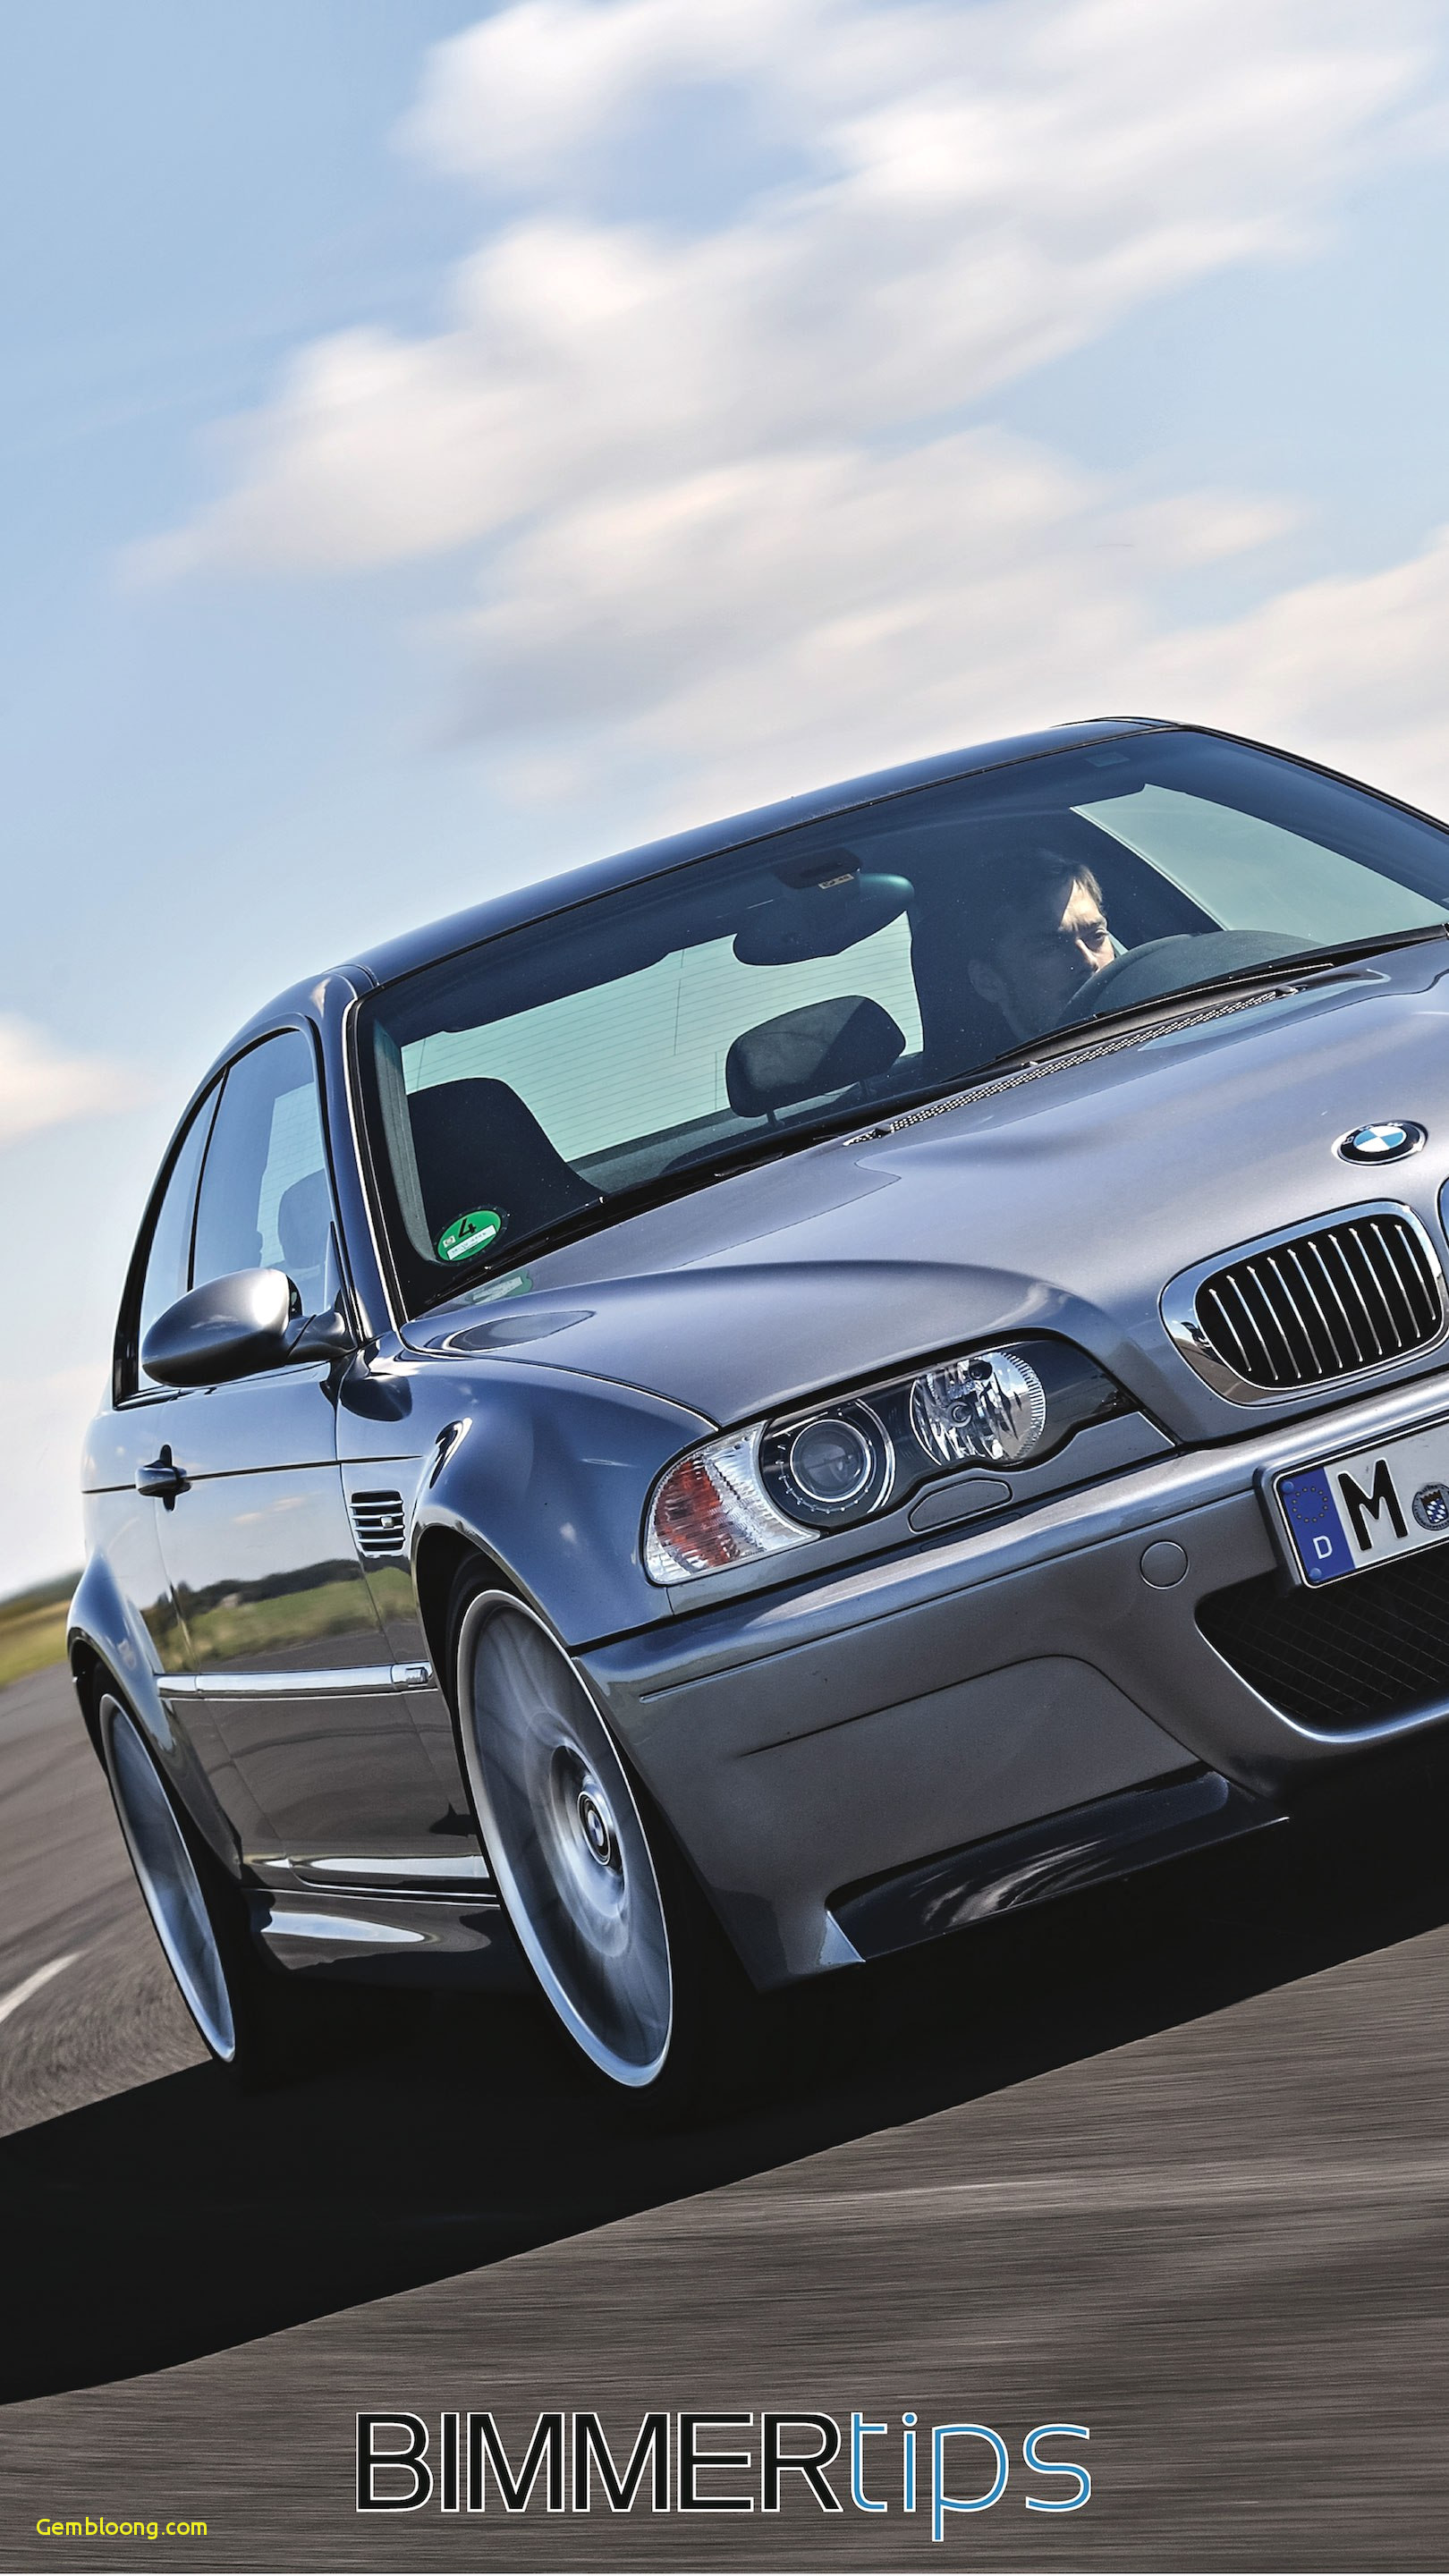 1620x2880 Bmw M3 V8 Wallpaper Luxury Bmw E46 M3 Hd Phone Wallpaper Bmw E46 M3  Wallpapers Wallpaper